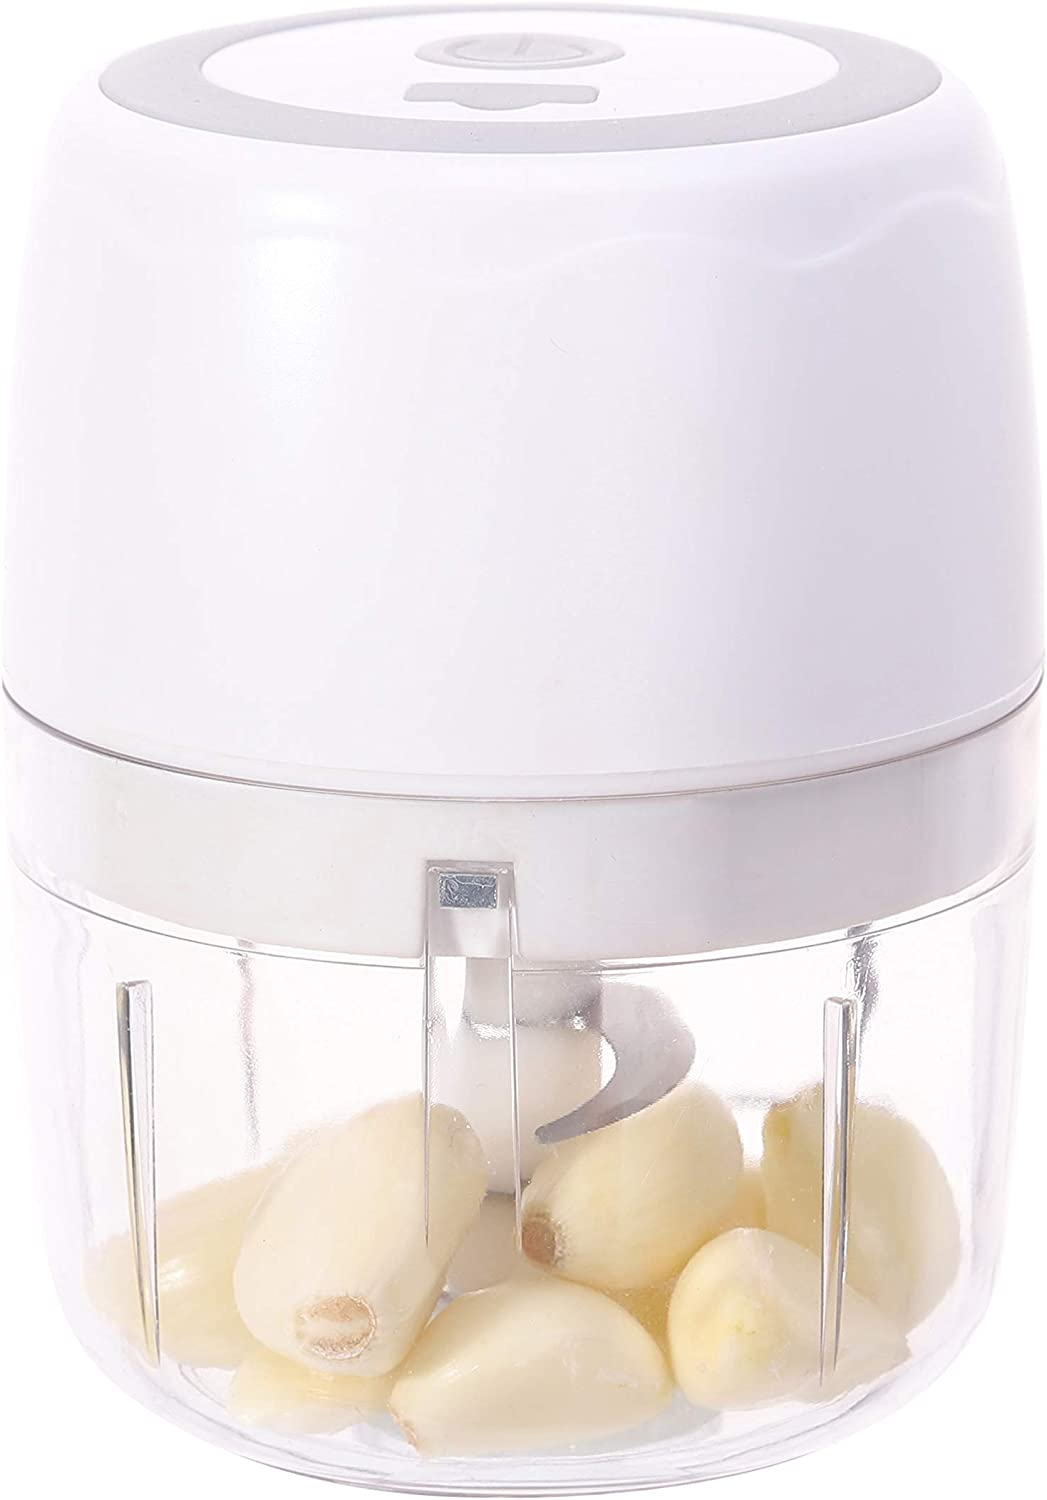 400ml Electric Garlic Chopper Masher, Small Food Slicer And Chopper, Portable Garlic Blender Mini Chopper Food Processor For Pepper Chili Vegetable Nuts Meat,Baby Food Maker 1.6cup